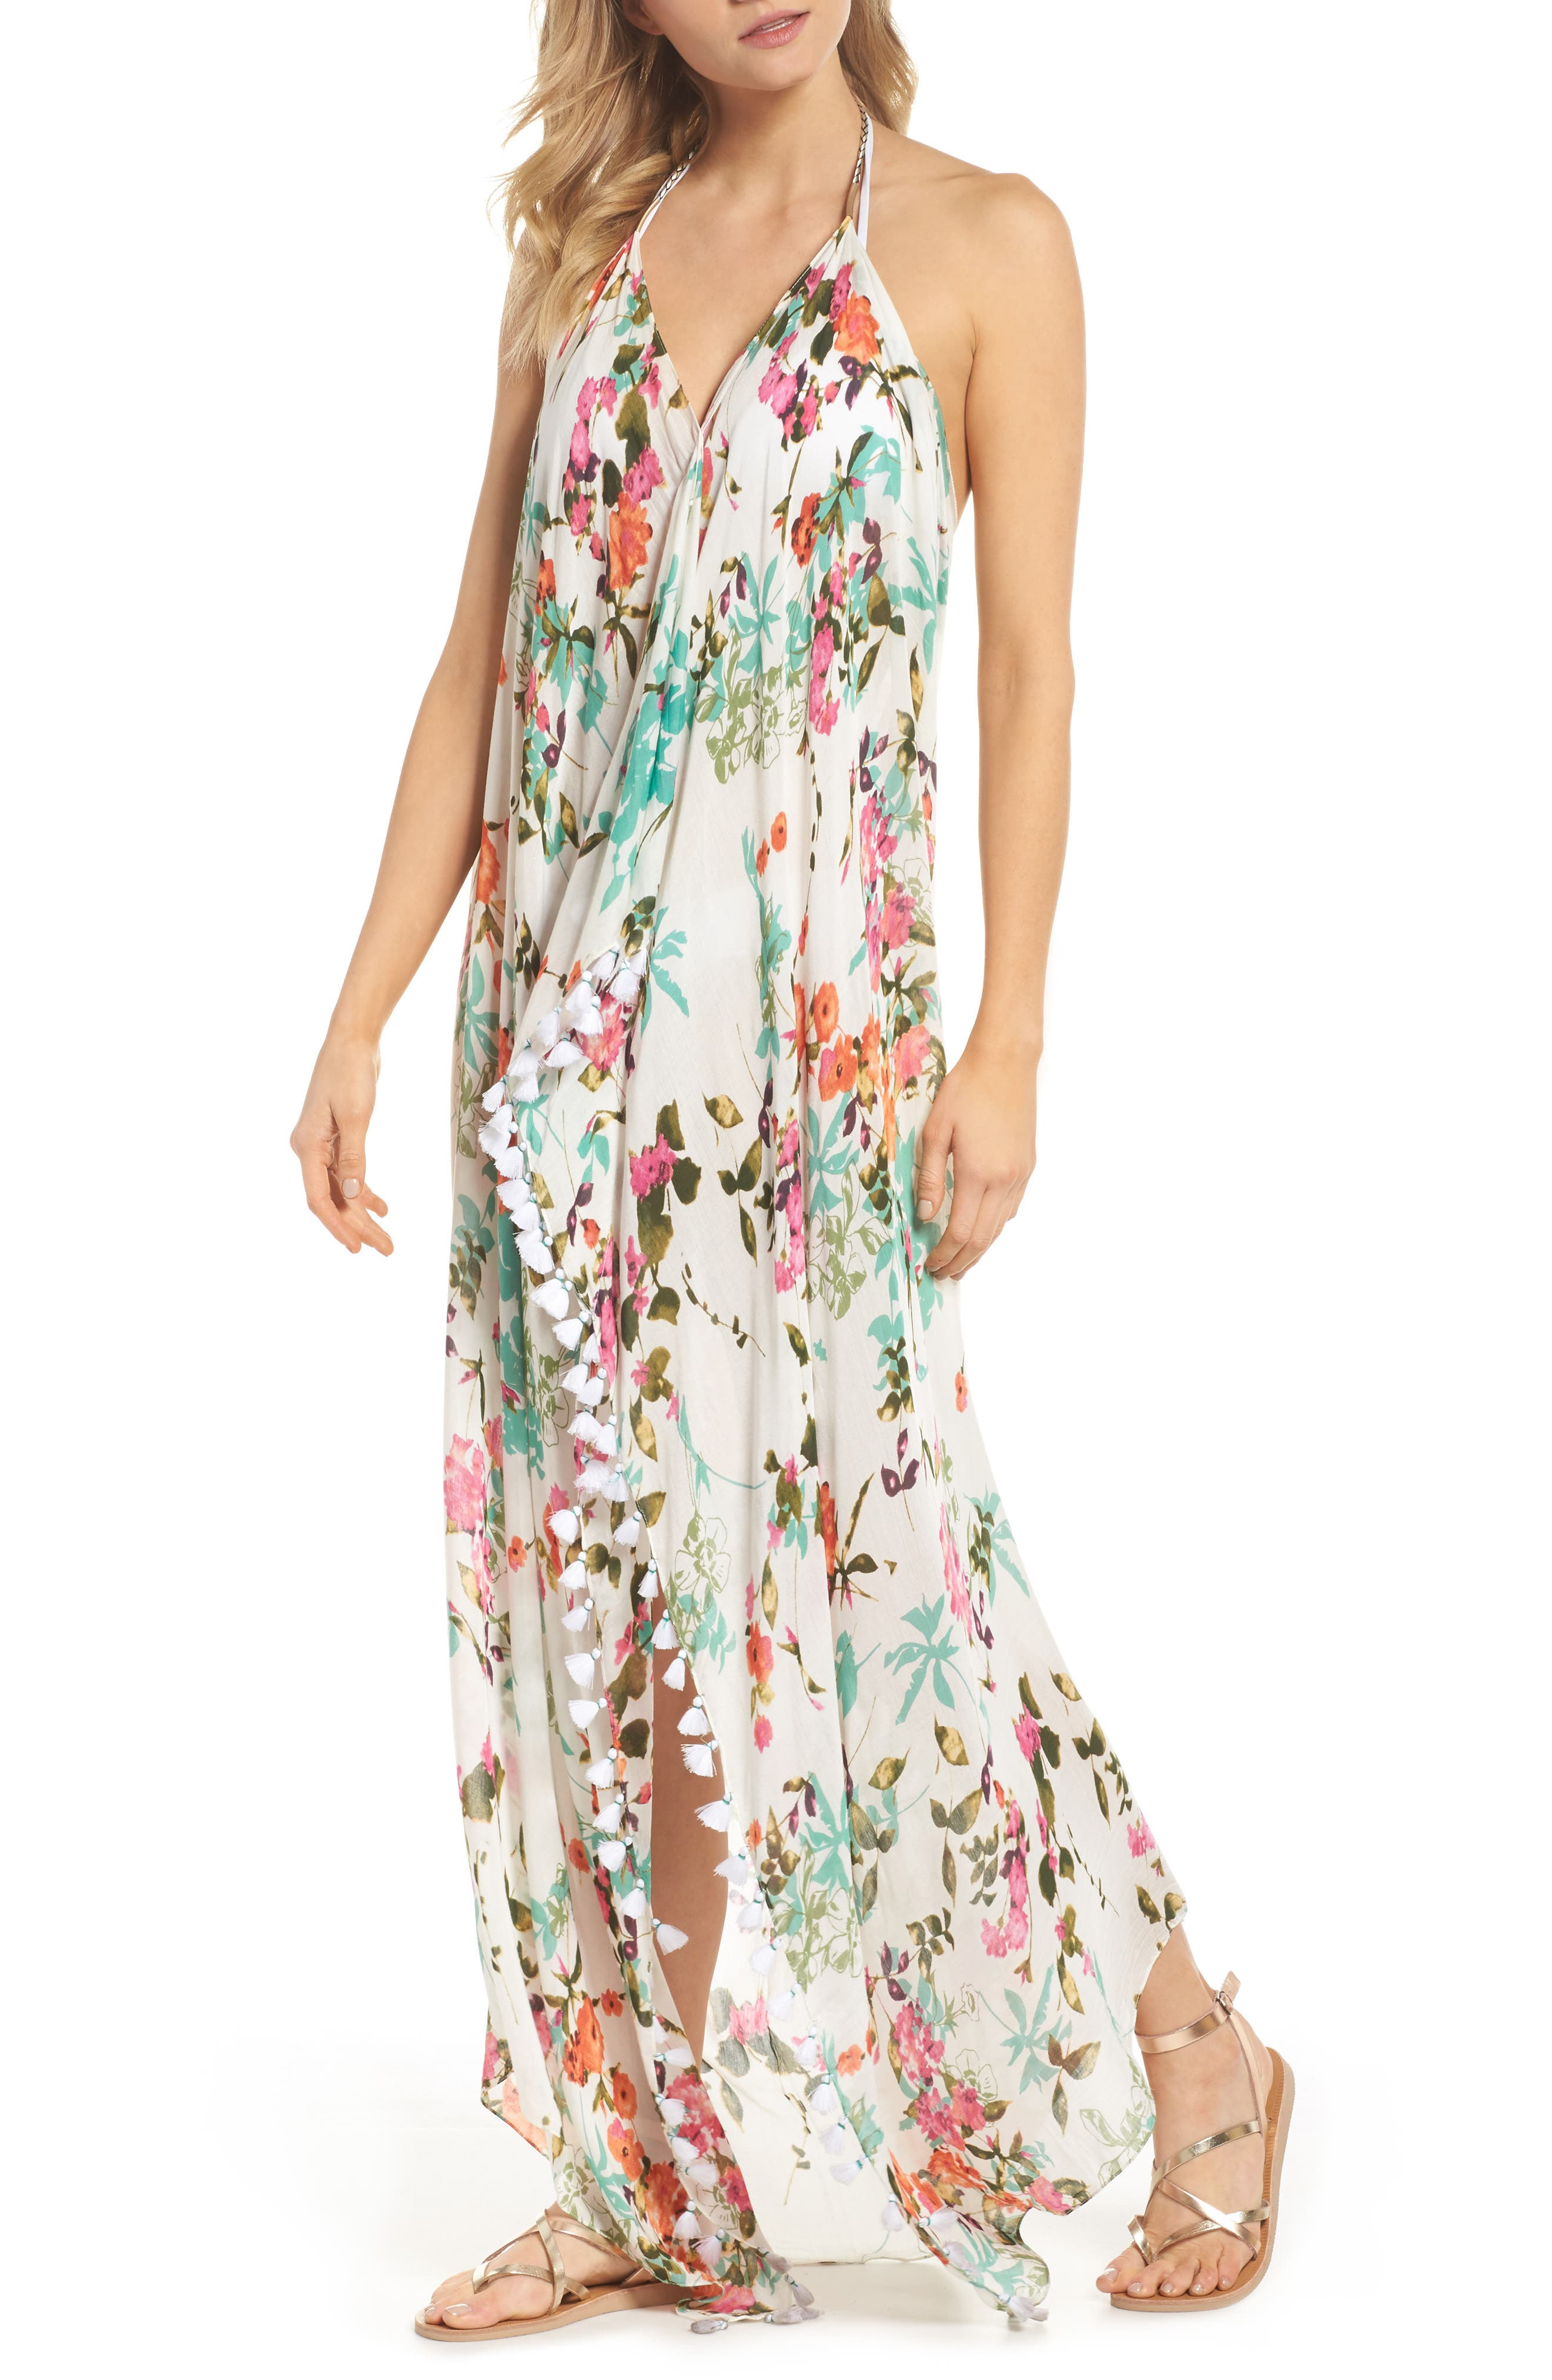 Beach to Street Cover-Up Dress,                             Main thumbnail 1, color,                             White